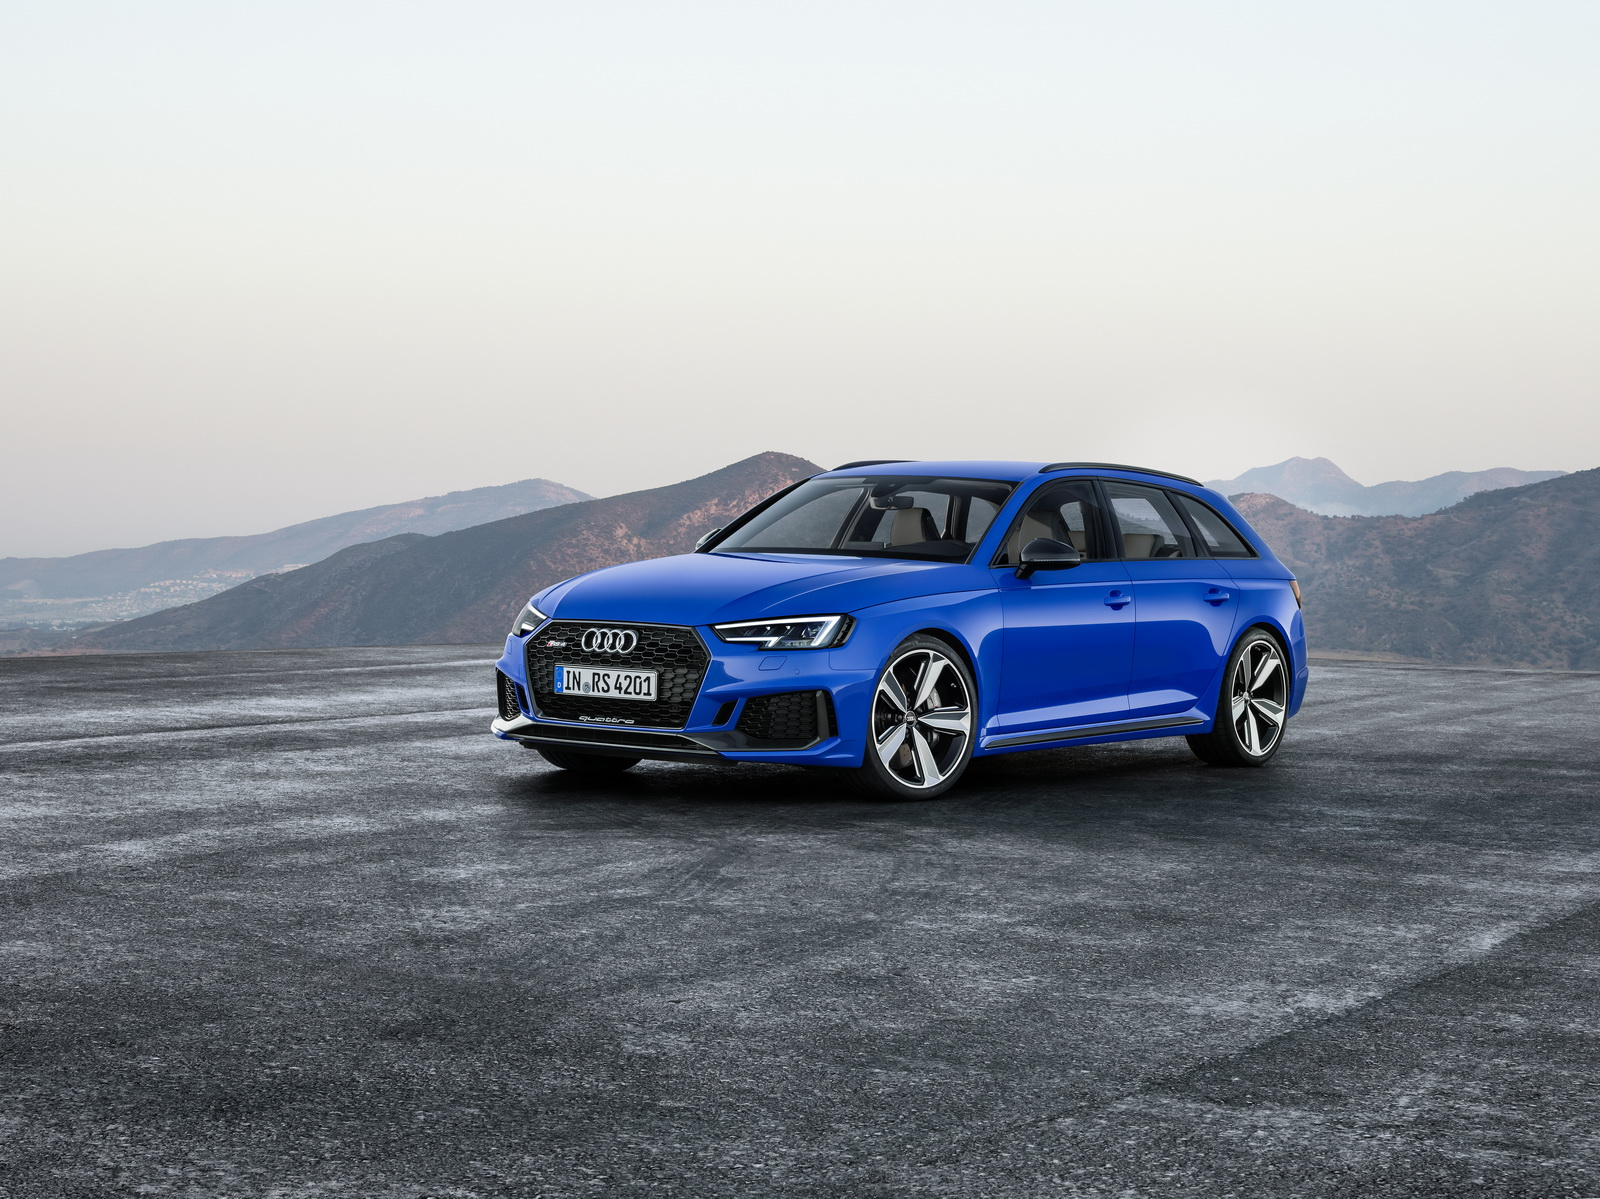 Audi 0 60 >> Audi Reveals The 2018 Rs4 Avant With A Stunning 0 60 Time Of